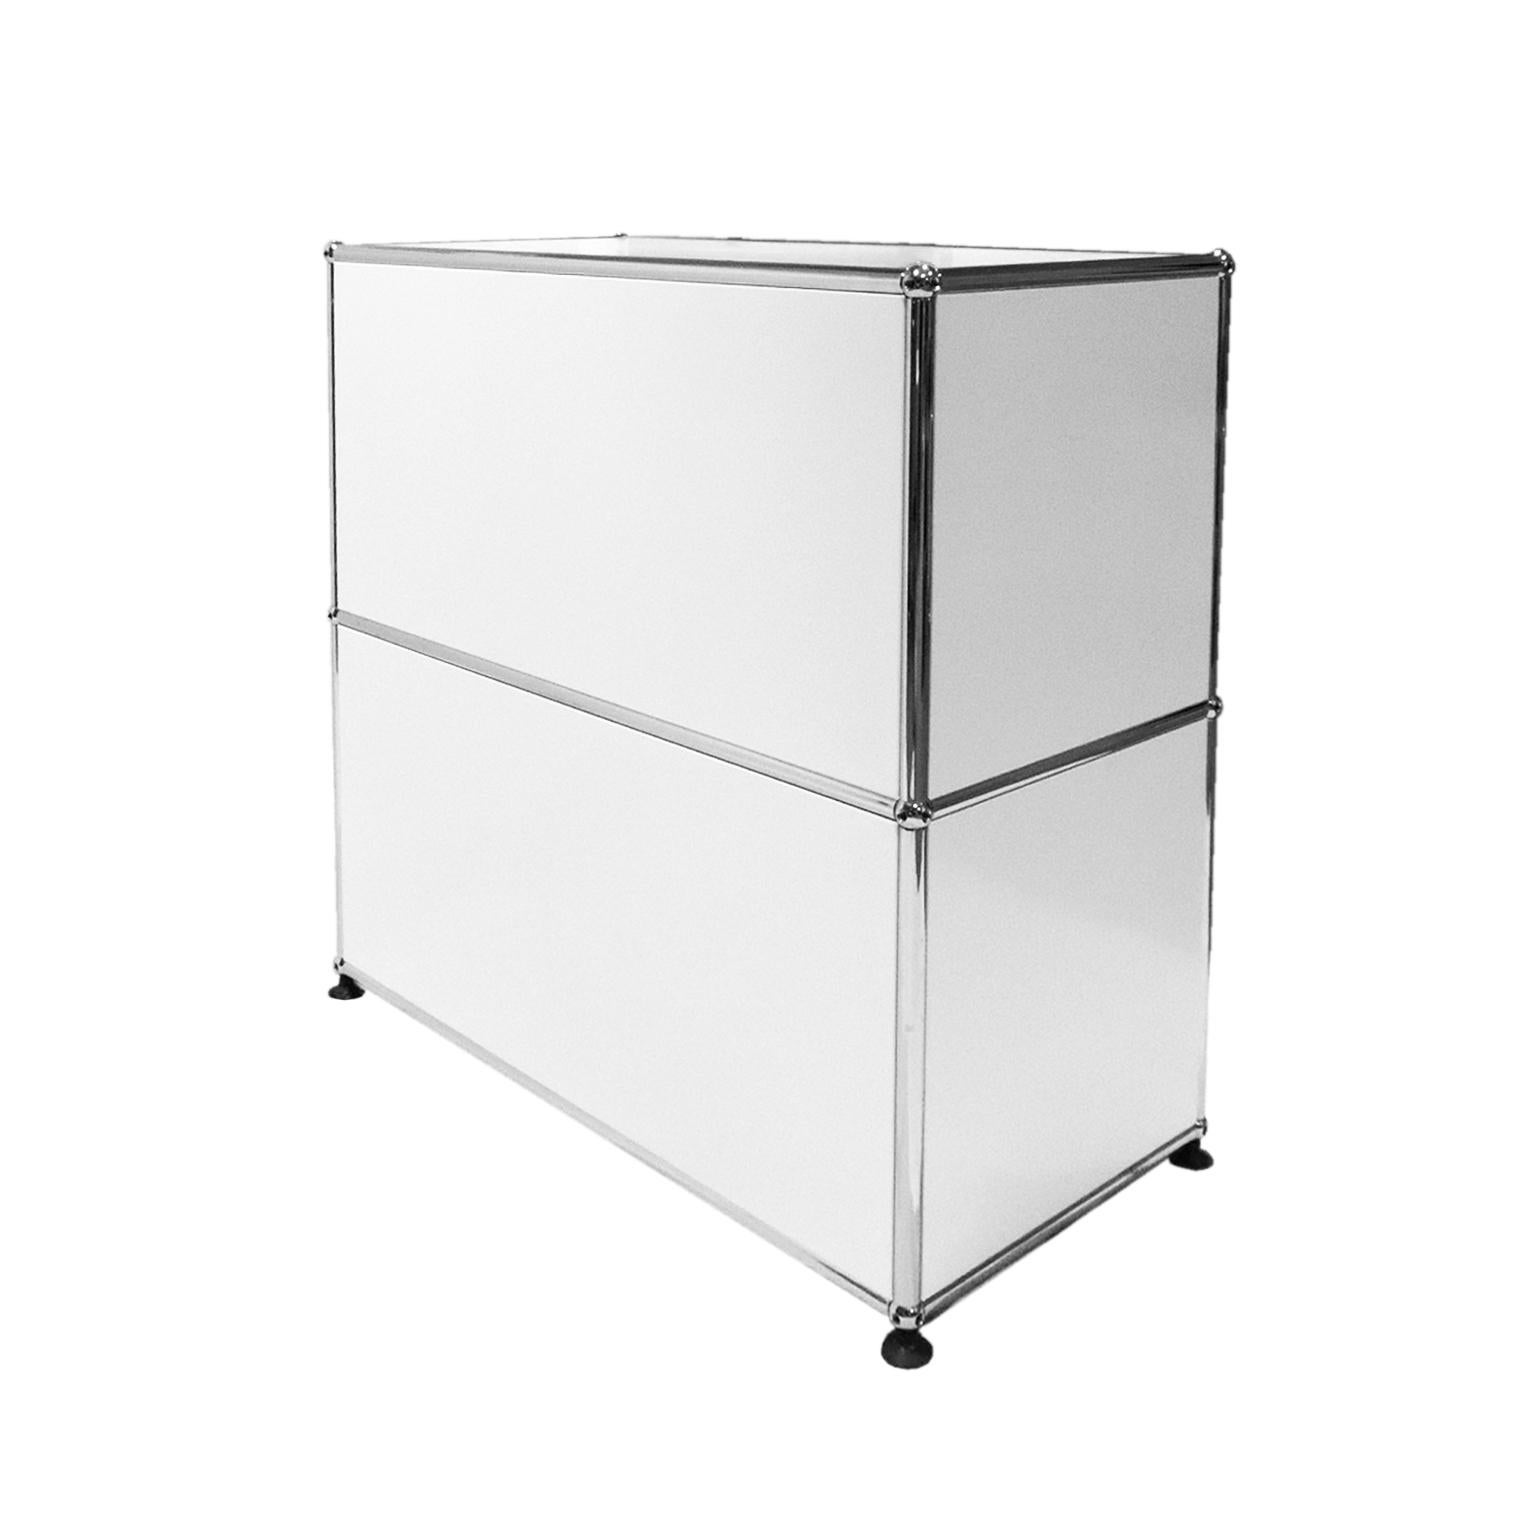 White usm modular furniture storage unit designed by fritz haller at 1stdibs